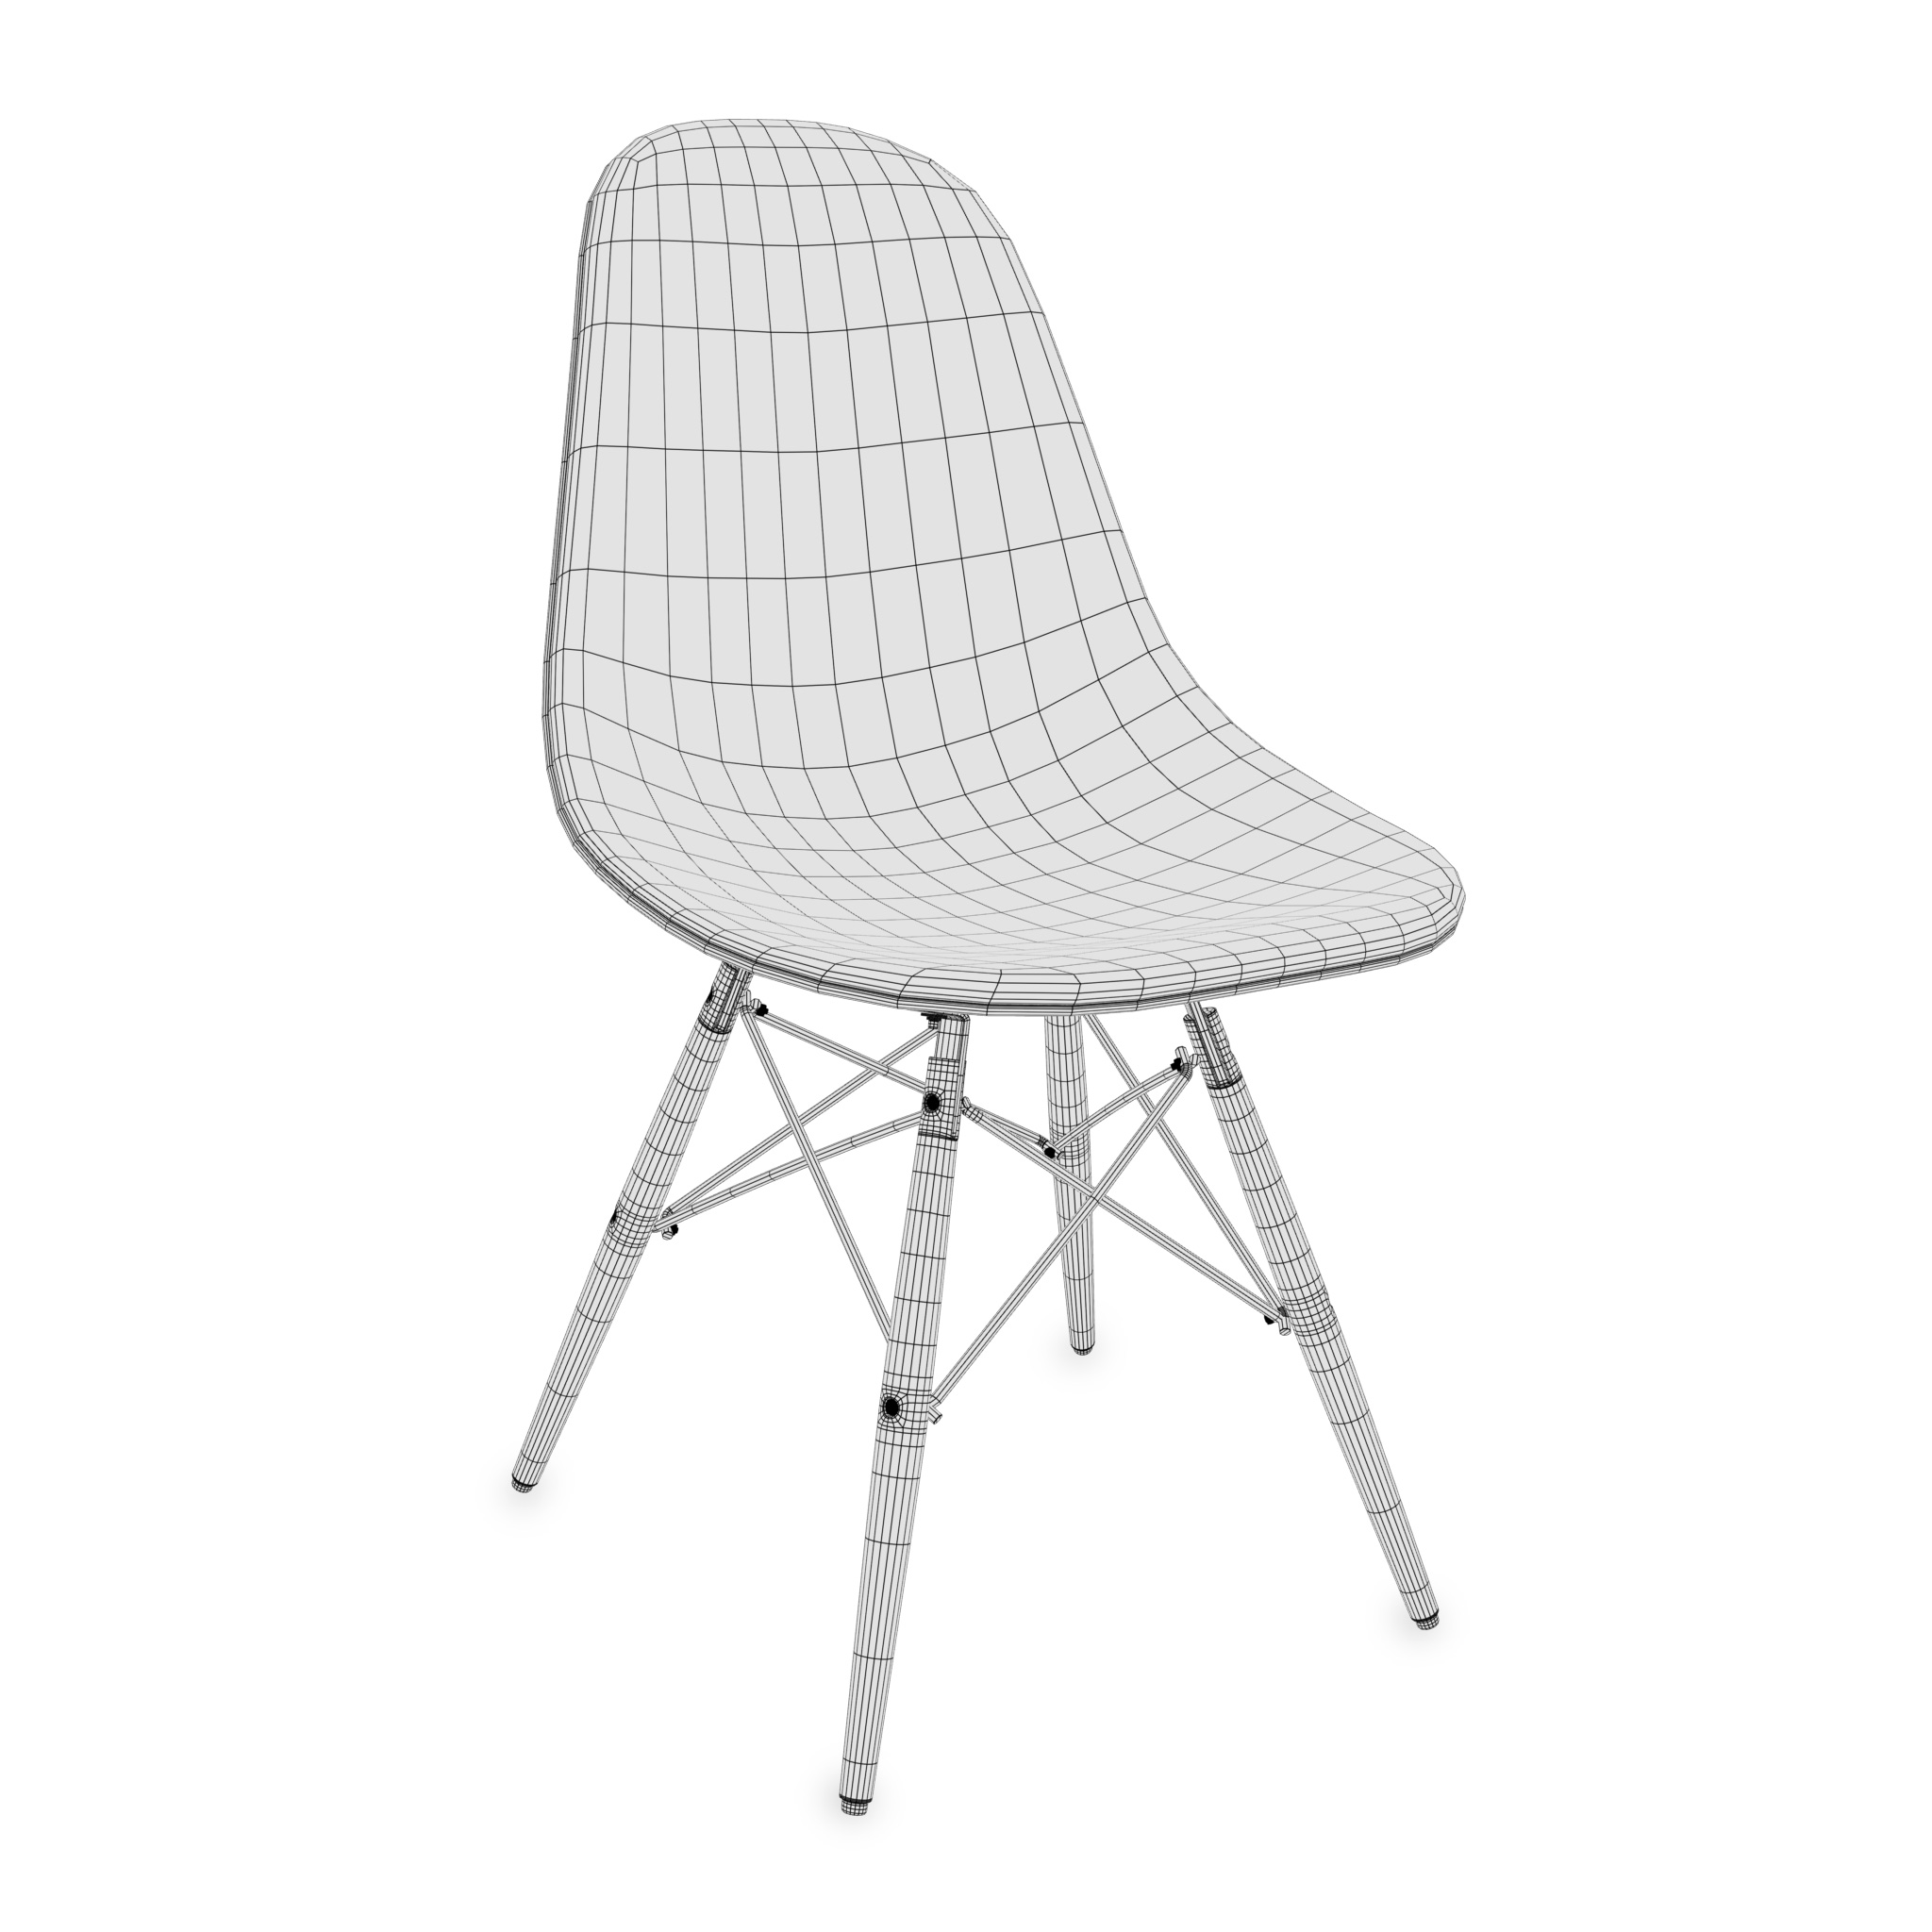 wireframe_chair_2.jpg